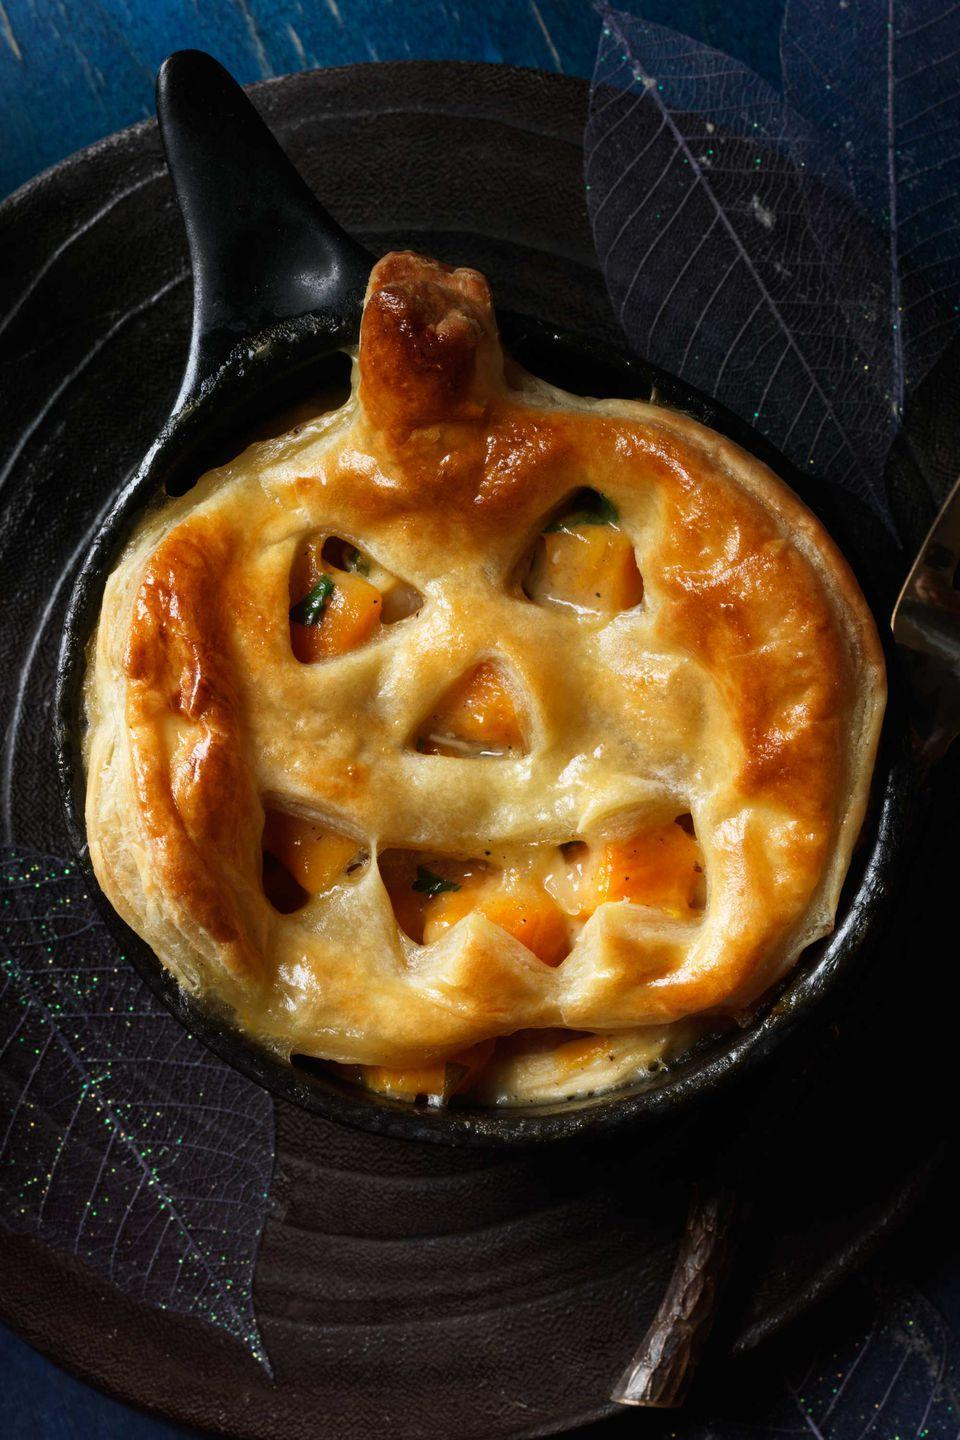 "<p>A frightfully tasty main course for Halloween, this <a href=""https://www.womansday.com/food-recipes/food-drinks/g1969/sweet-potato-recipes/"" rel=""nofollow noopener"" target=""_blank"" data-ylk=""slk:sweet potato dish"" class=""link rapid-noclick-resp"">sweet potato dish</a> is also a comforting choice <a href=""https://www.womansday.com/food-recipes/food-drinks/g3165/best-comfort-food-recipes/"" rel=""nofollow noopener"" target=""_blank"" data-ylk=""slk:throughout winter"" class=""link rapid-noclick-resp"">throughout winter</a>. Serve it in ramekins as shown, or as one big pie with uncut puff pastry on top, baking until it turns golden.</p><p><a href=""https://www.womansday.com/food-recipes/food-drinks/recipes/a11925/jack-o-lantern-chicken-sweet-potato-potpies-recipe-123644/"" rel=""nofollow noopener"" target=""_blank"" data-ylk=""slk:Get the recipe."" class=""link rapid-noclick-resp""><strong>Get the recipe.</strong></a></p>"